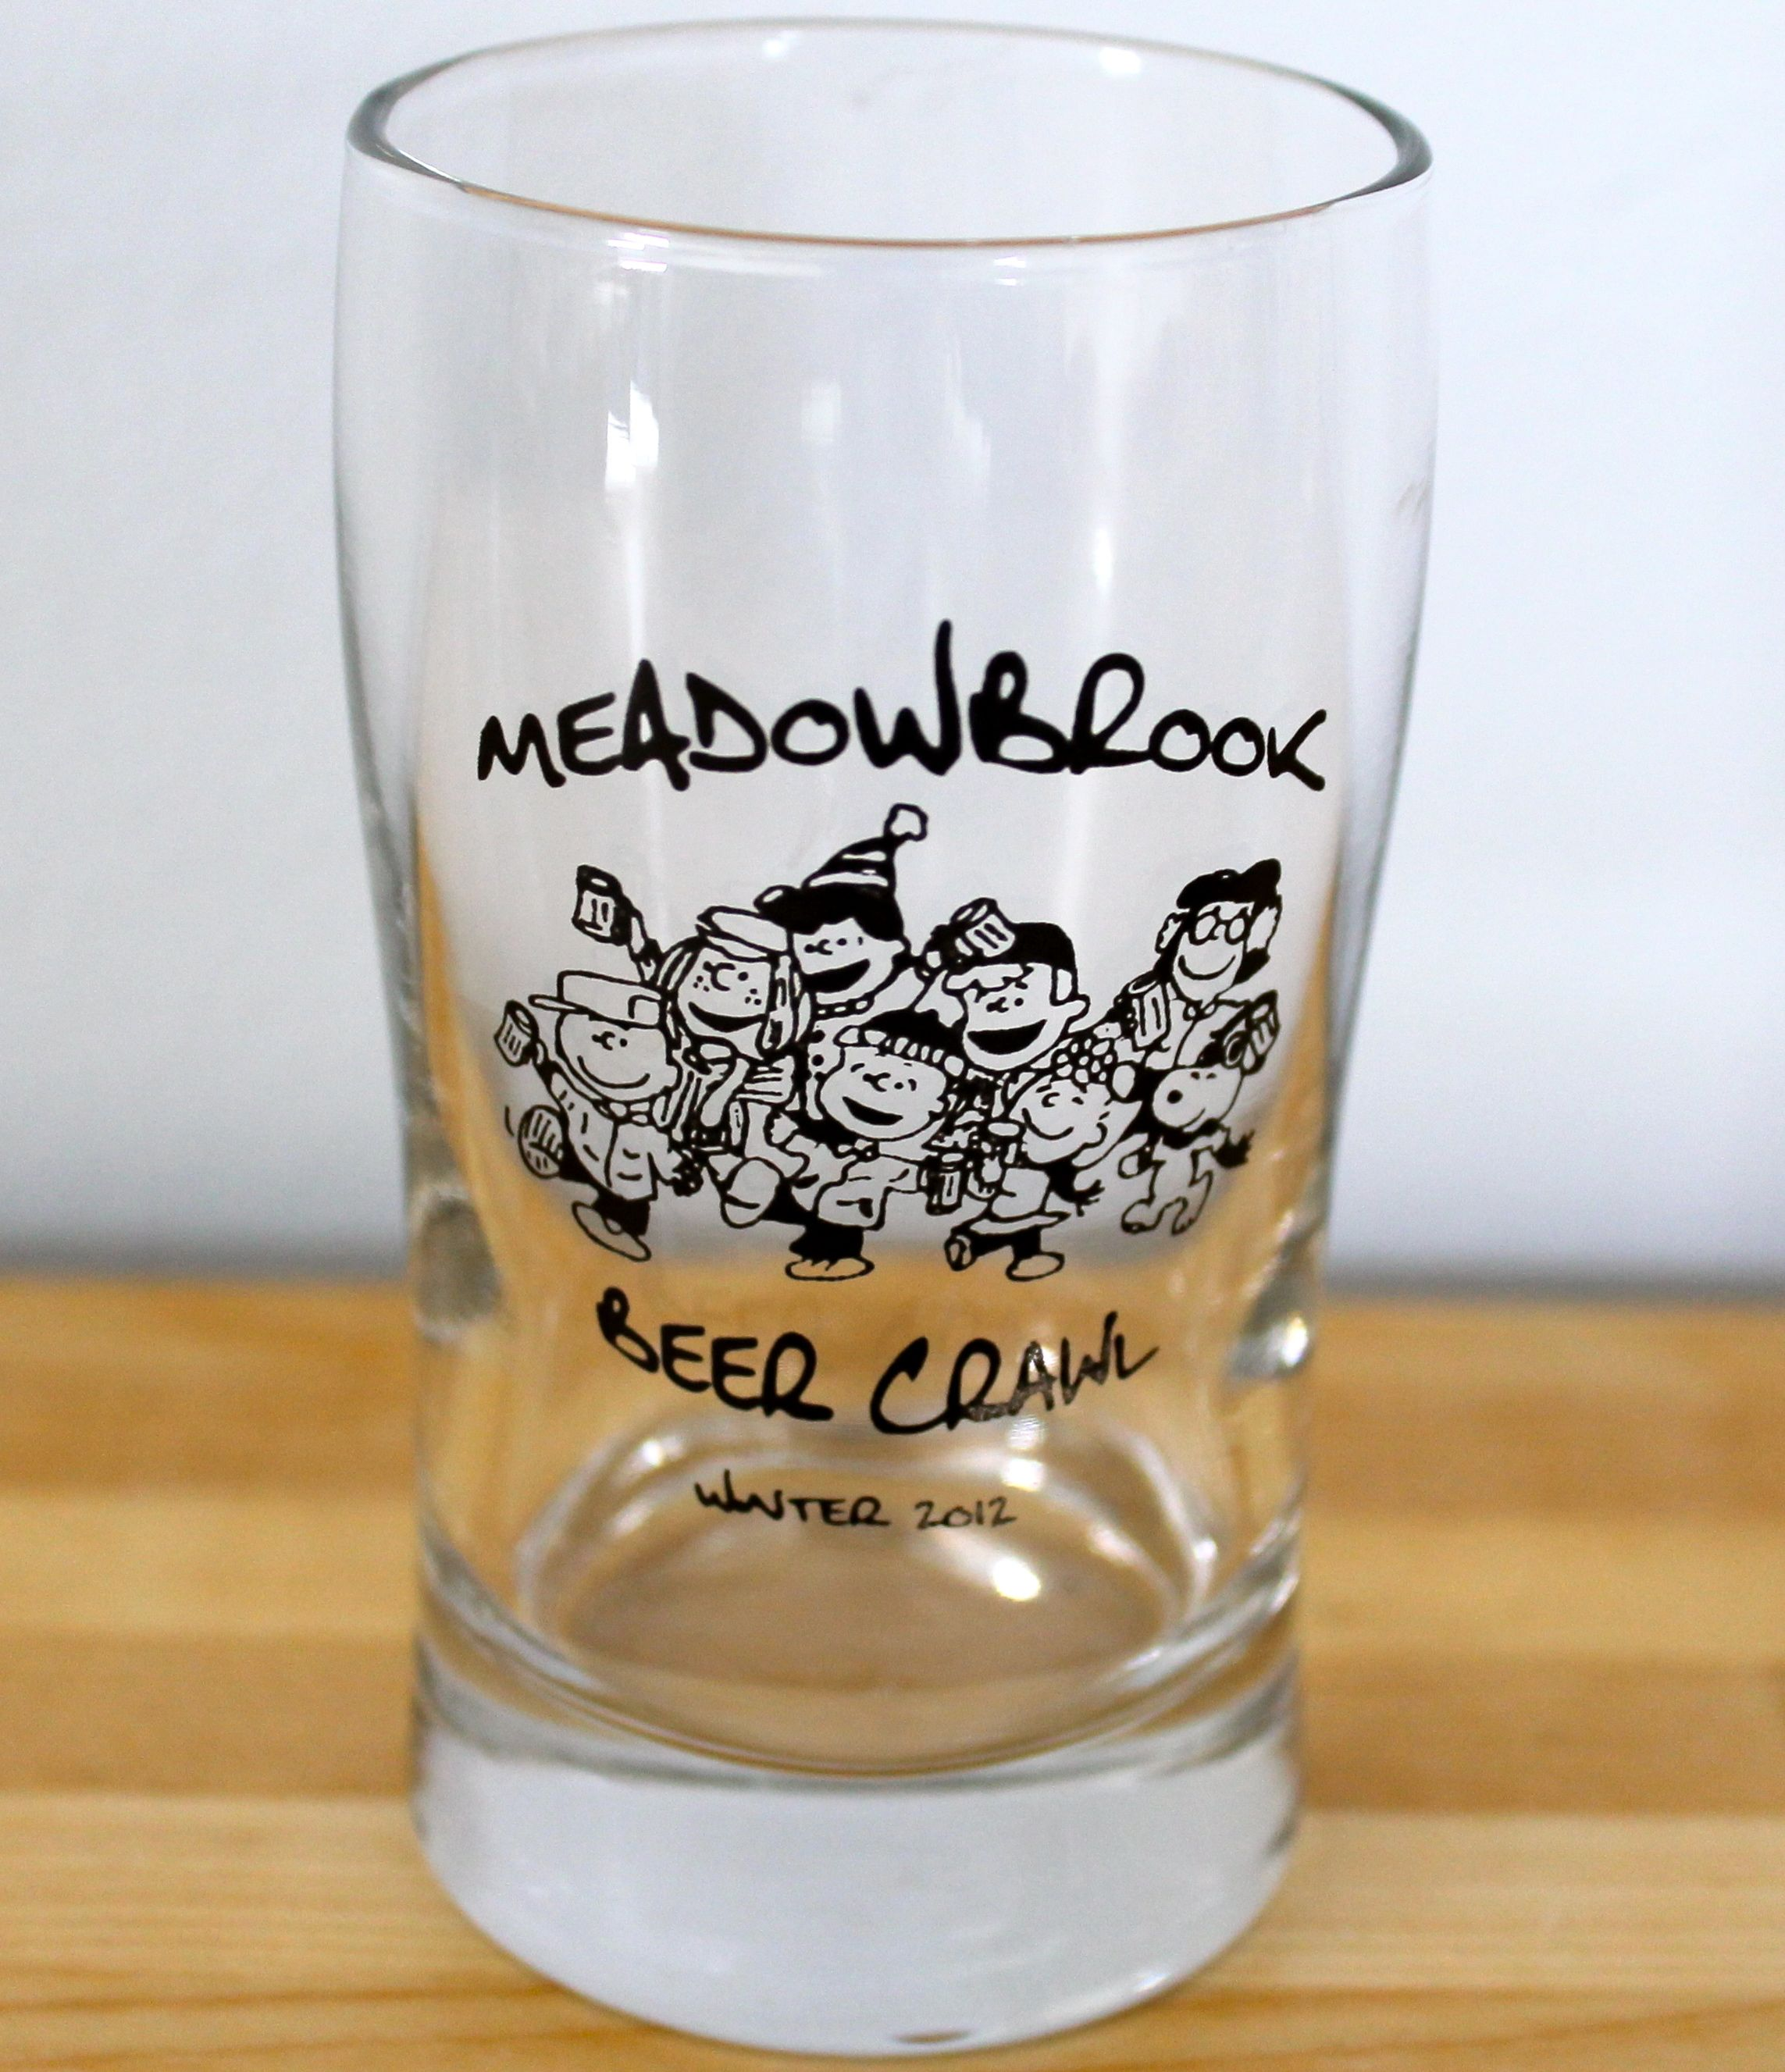 Beer tasting glass - Our Neighborhood Beer Crawl